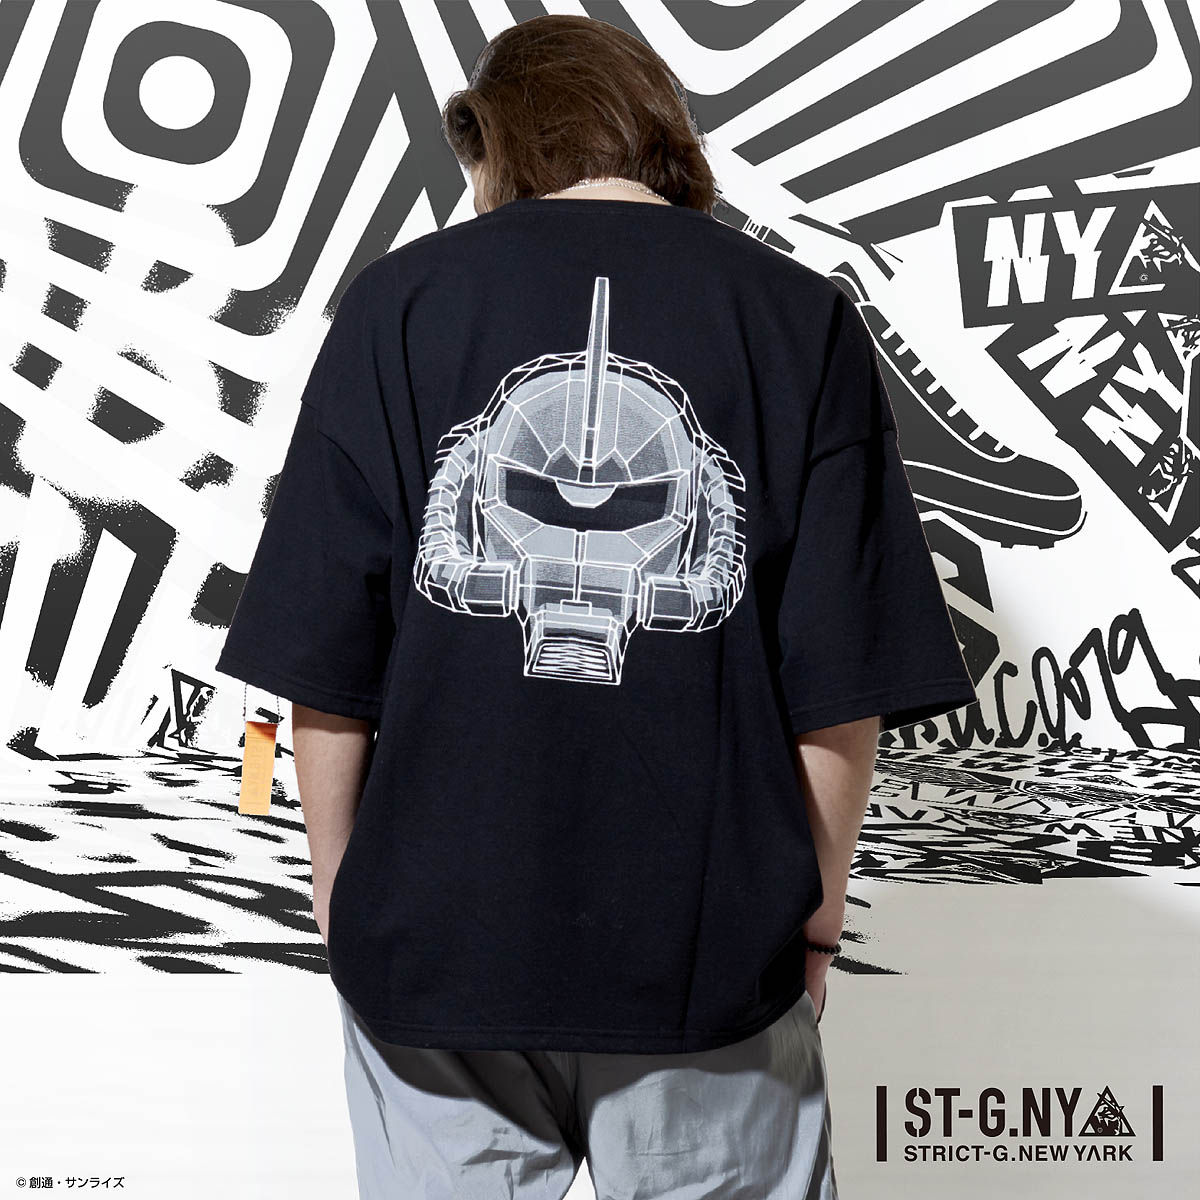 STRICT-G NEW YARK Char's Zaku II Oversized T-shirt